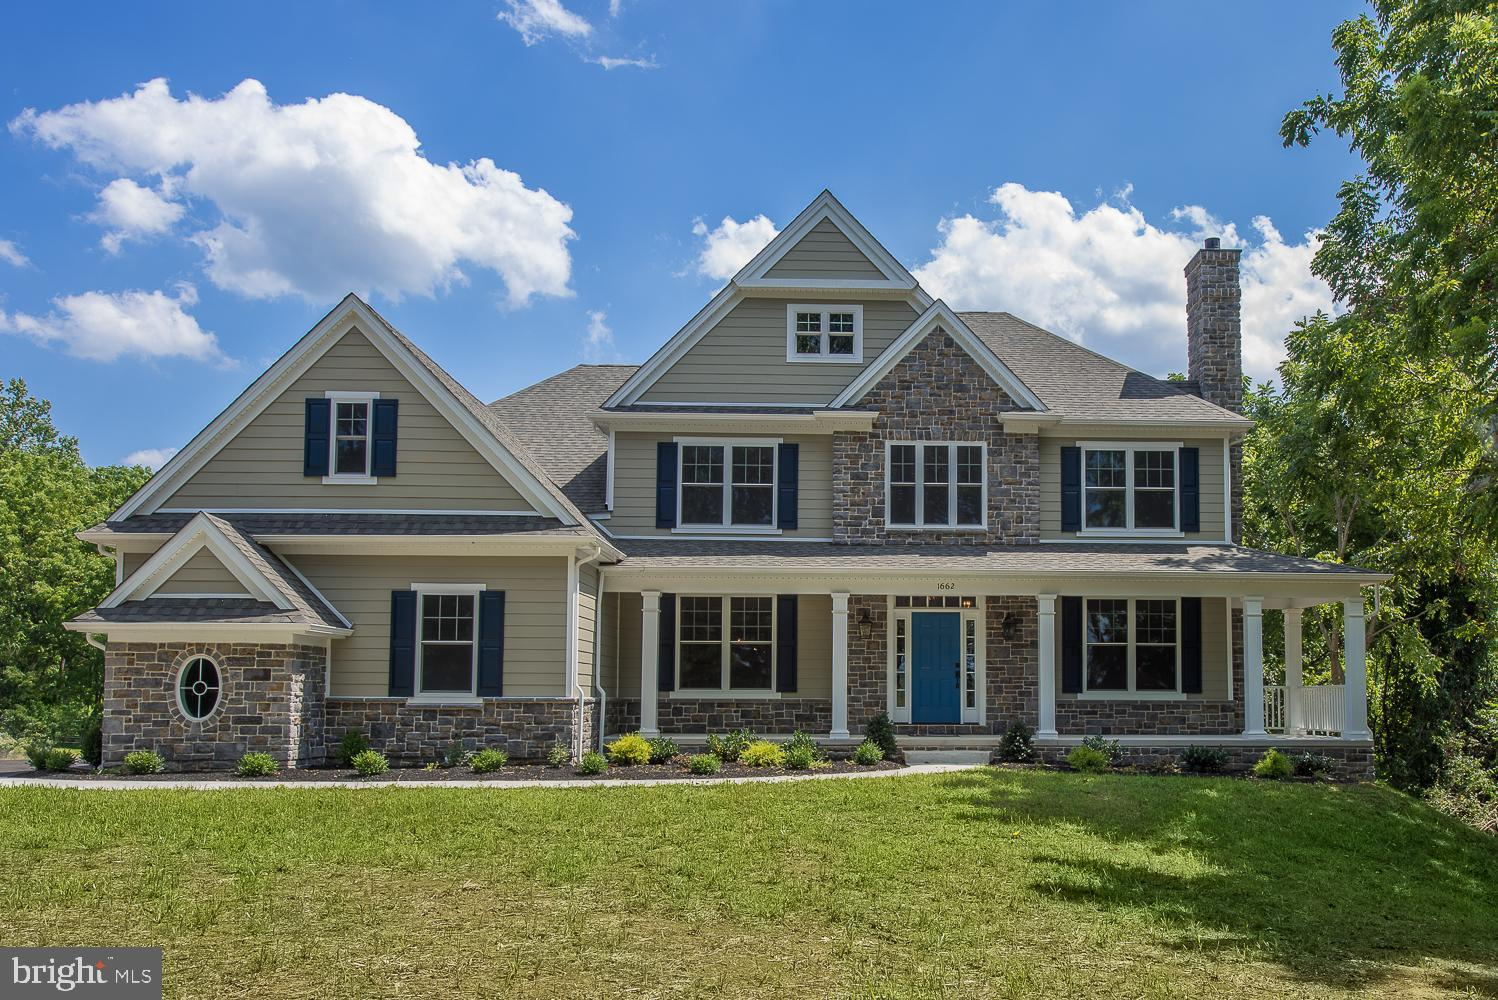 1662 E BOOT ROAD, WEST CHESTER, PA 19380